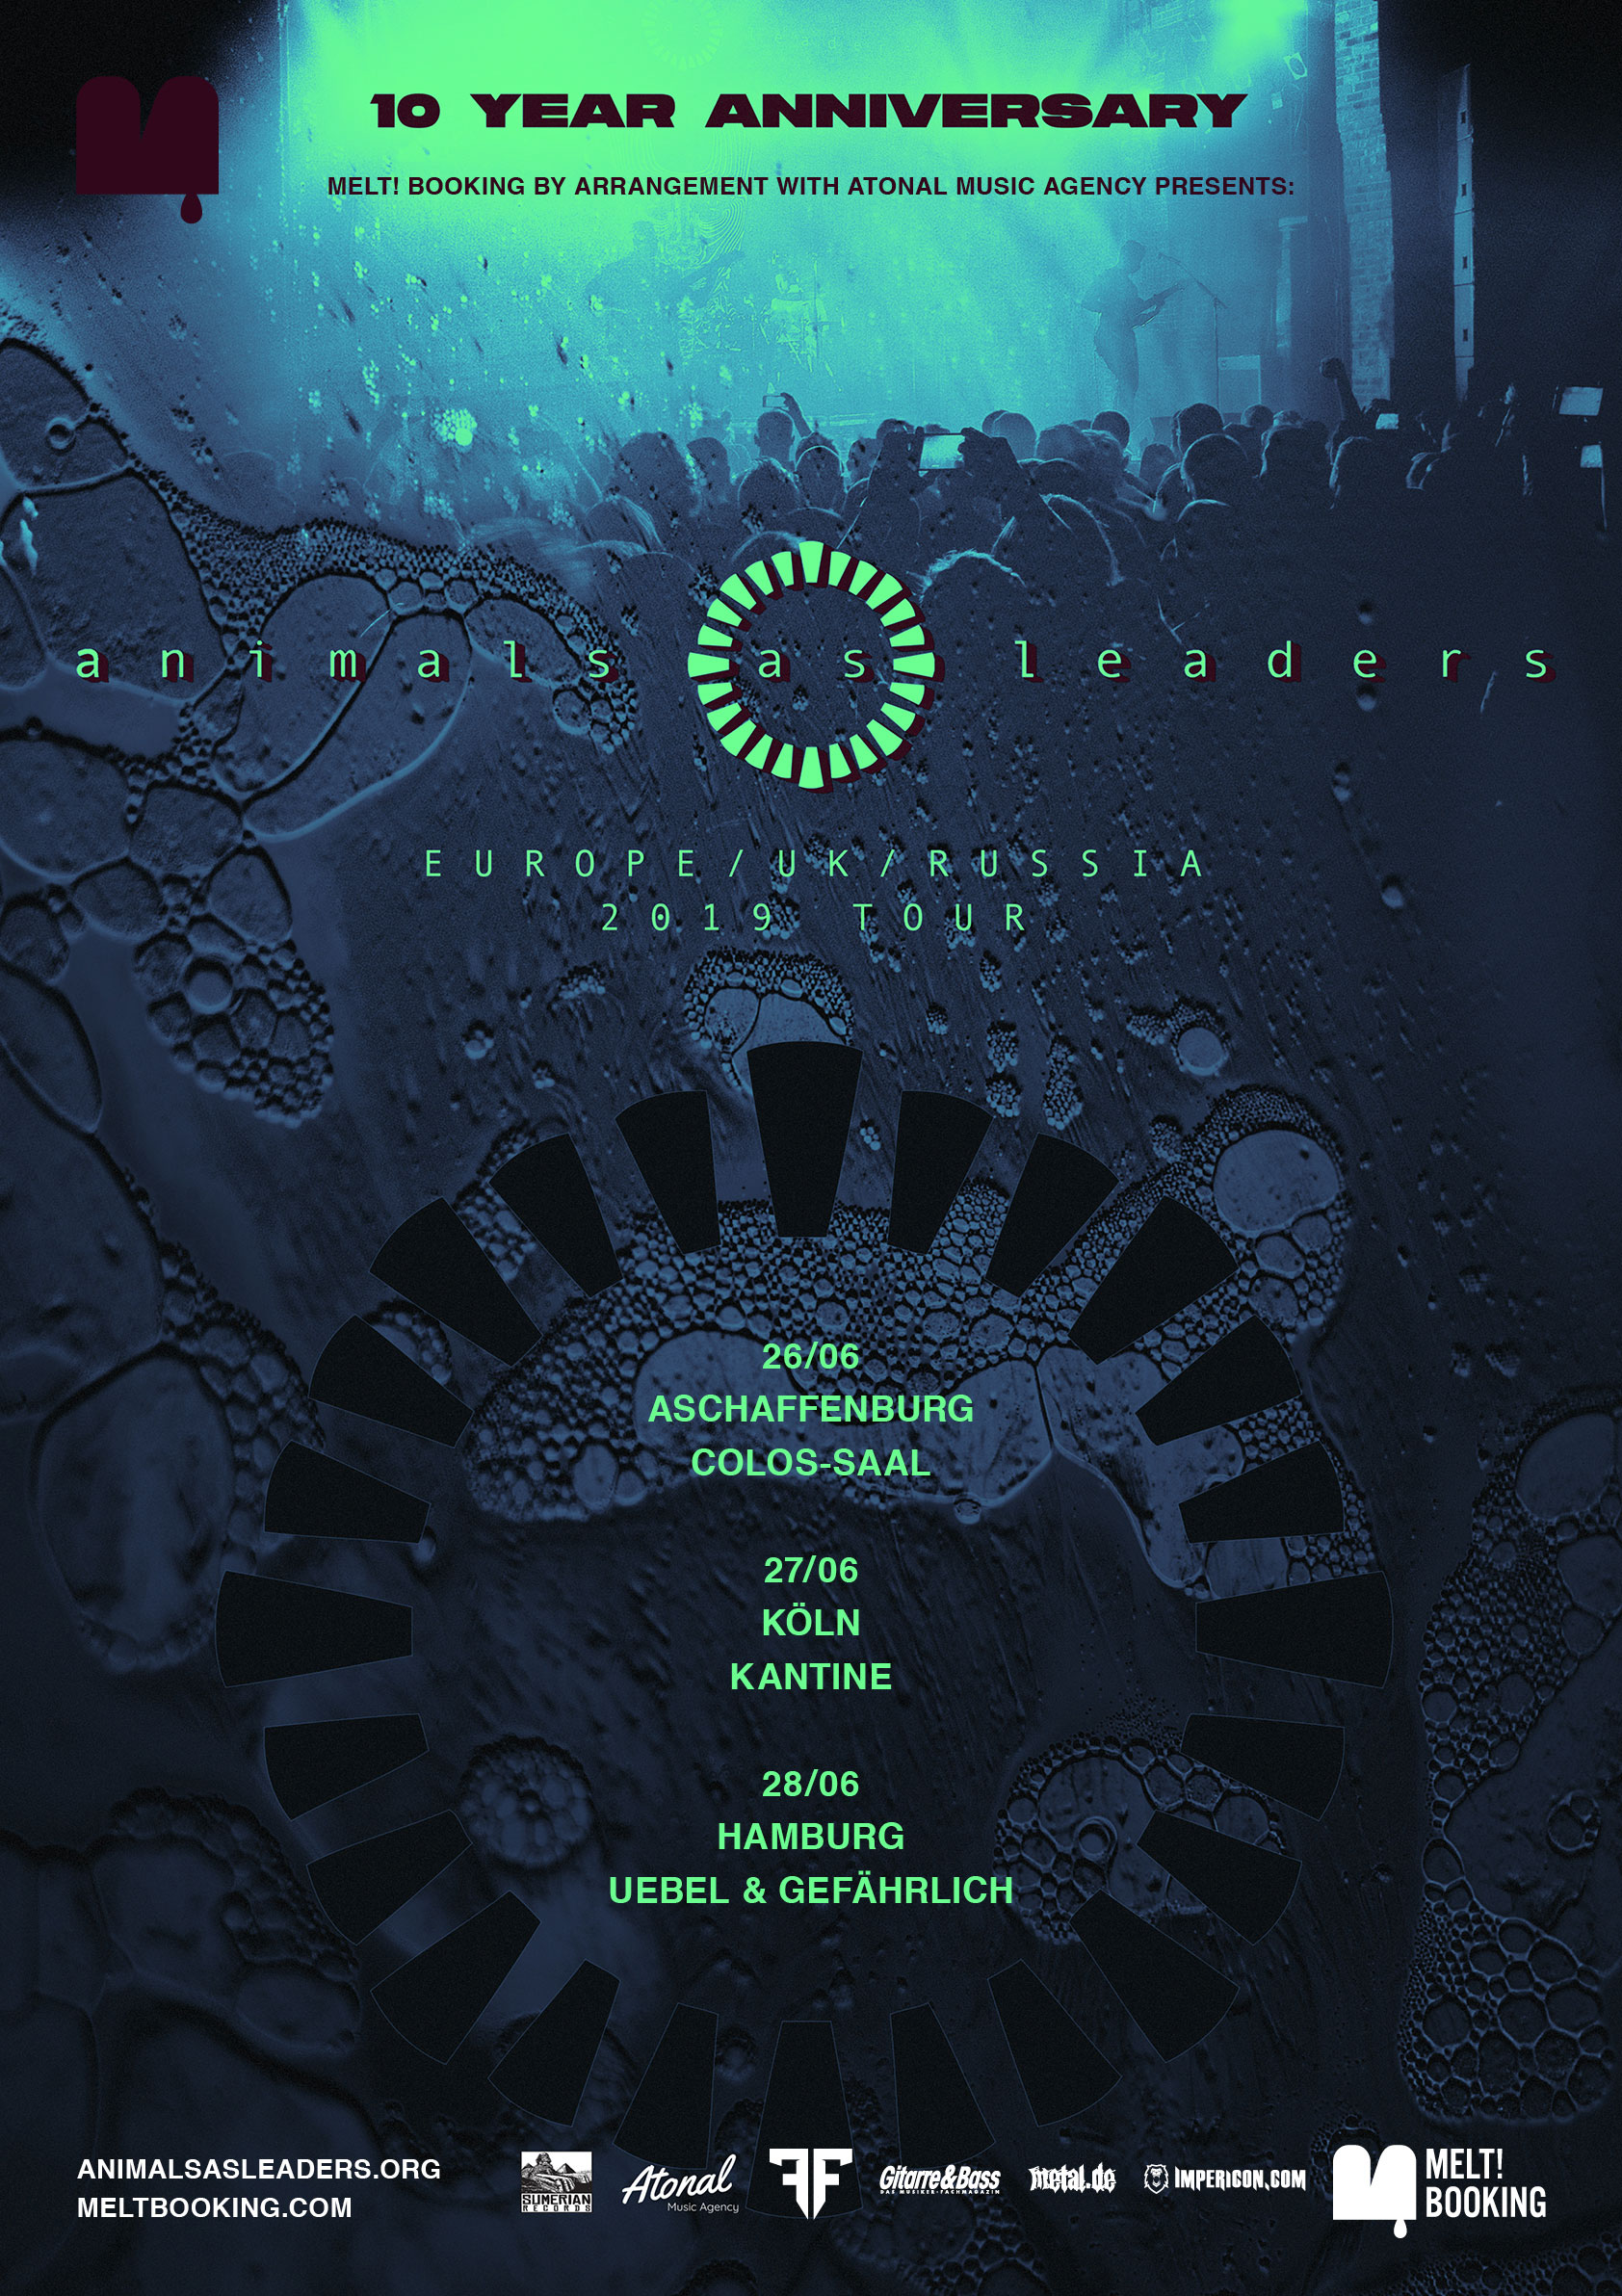 Animals As Leaders 2019 10 Year Anniversary Tour